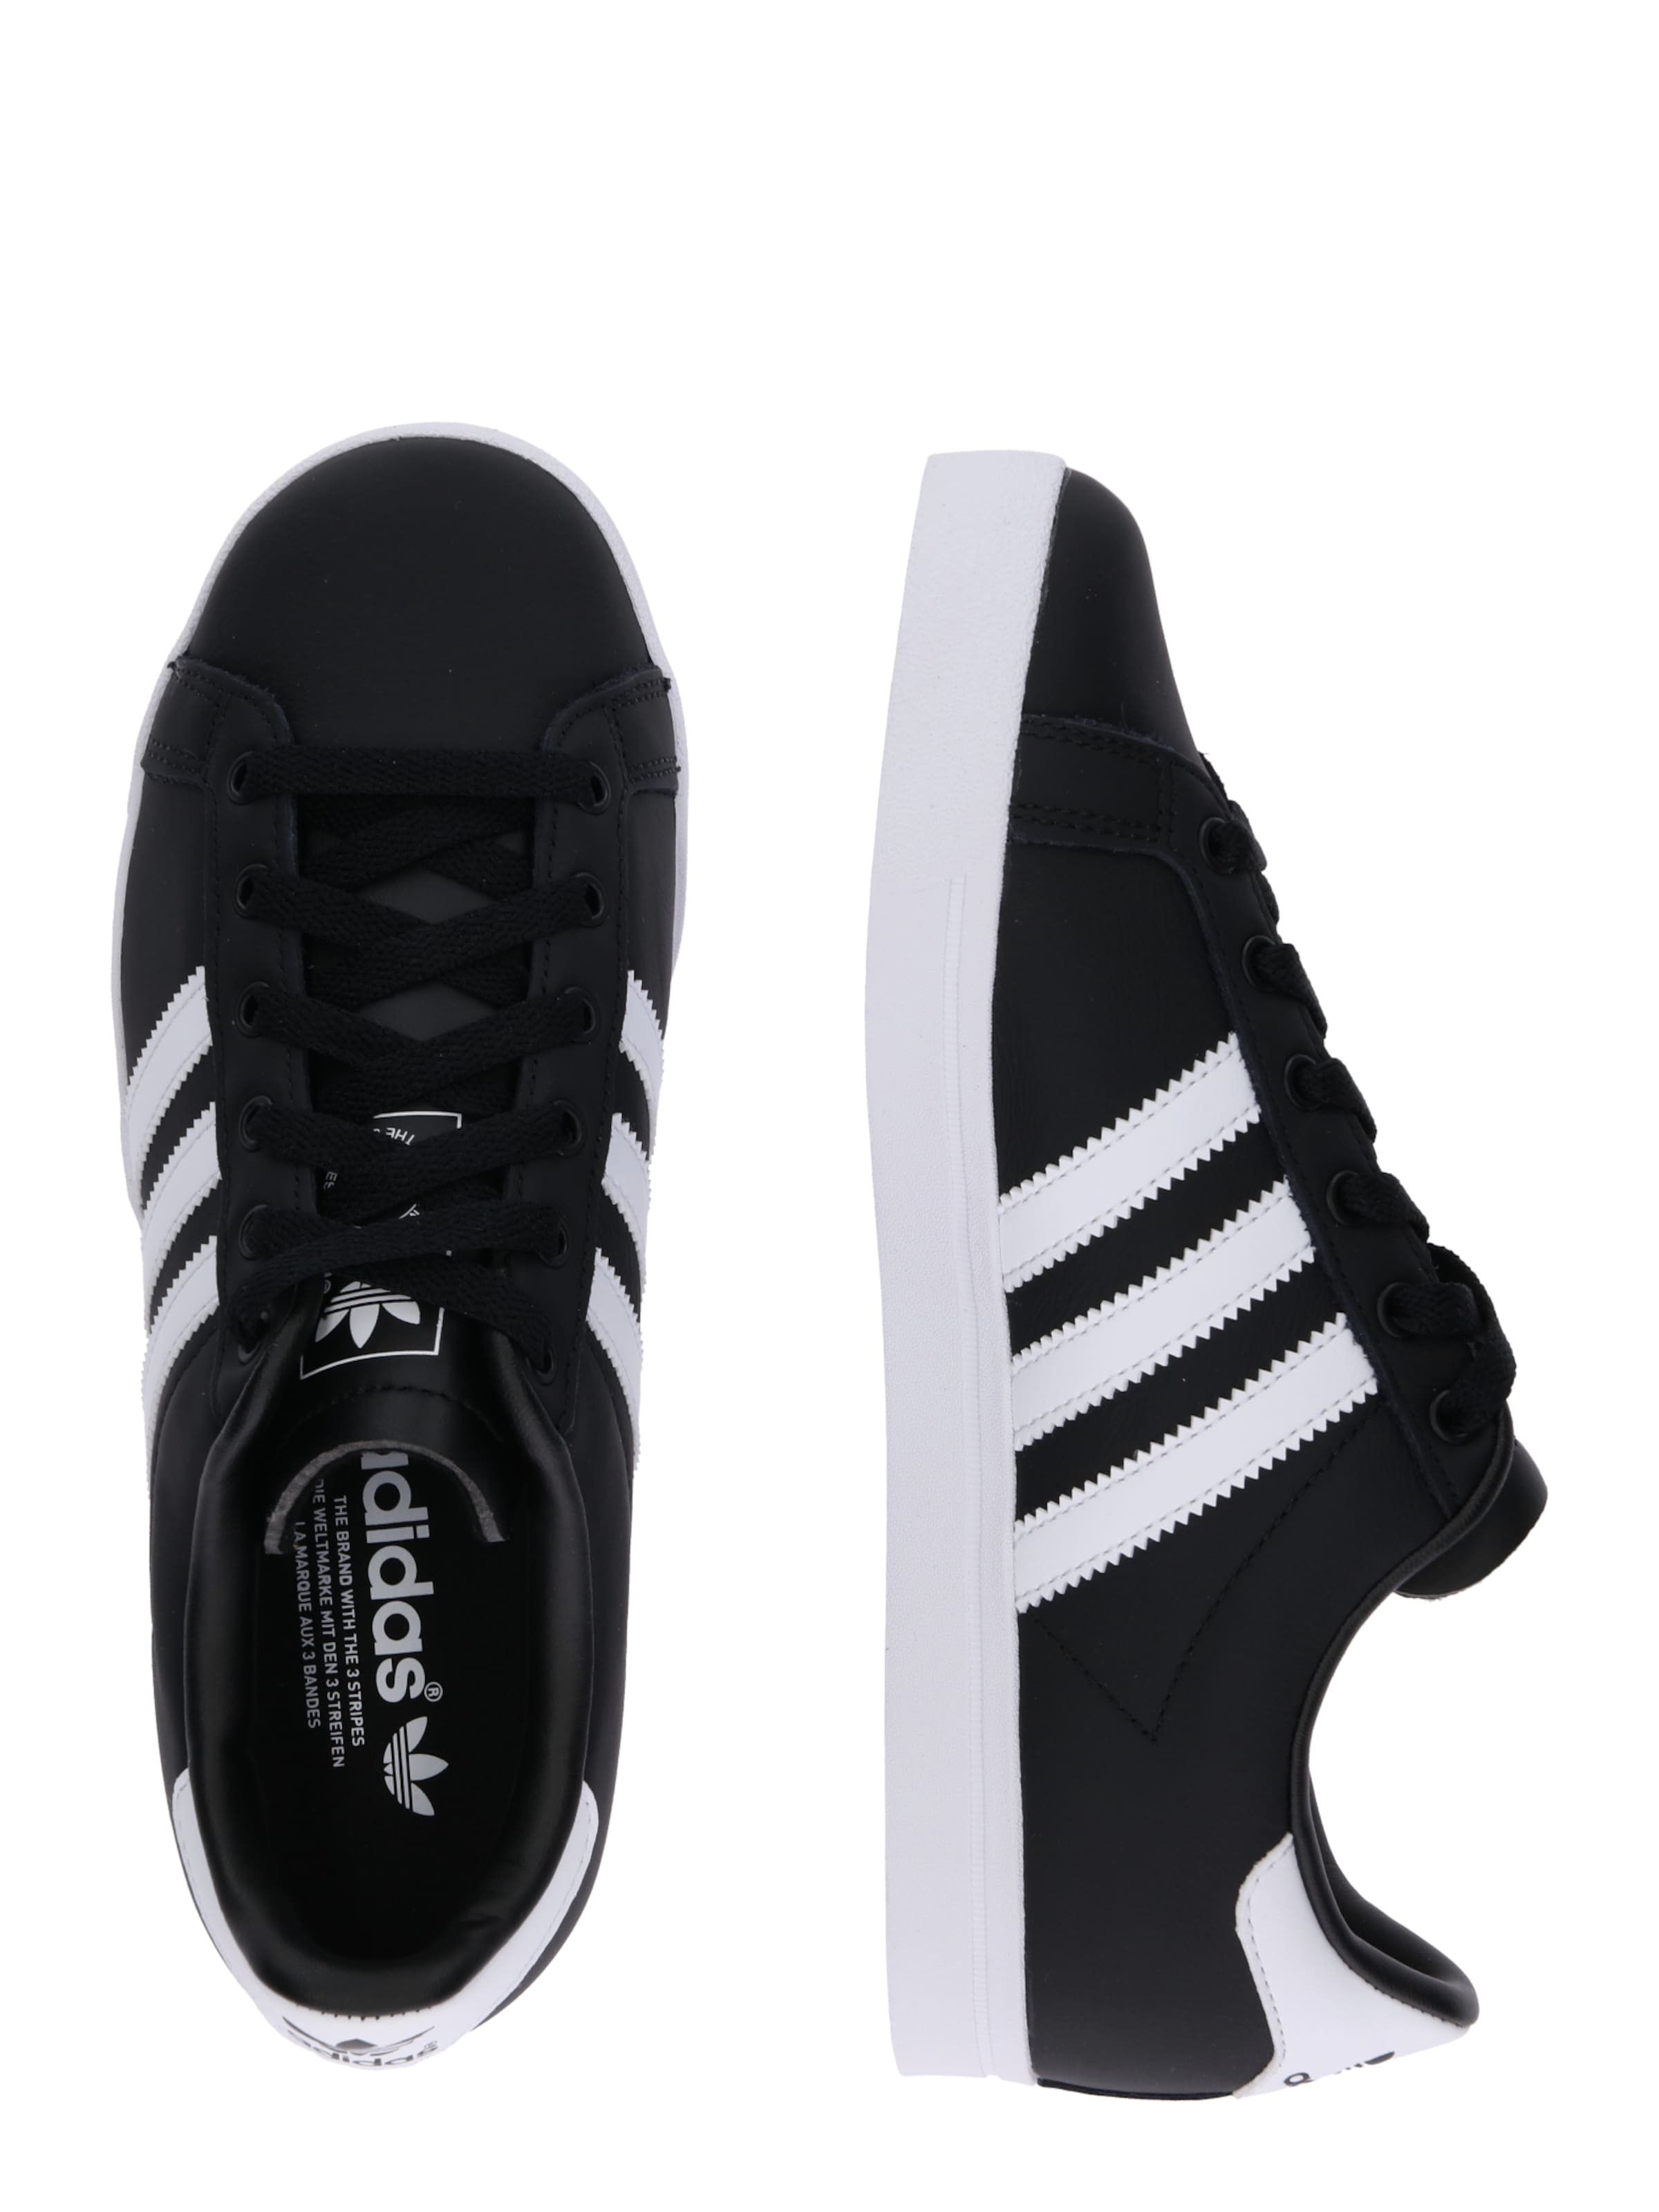 'coast Originals In Adidas SchwarzWeiß Sneaker Star' Y7byfv6g